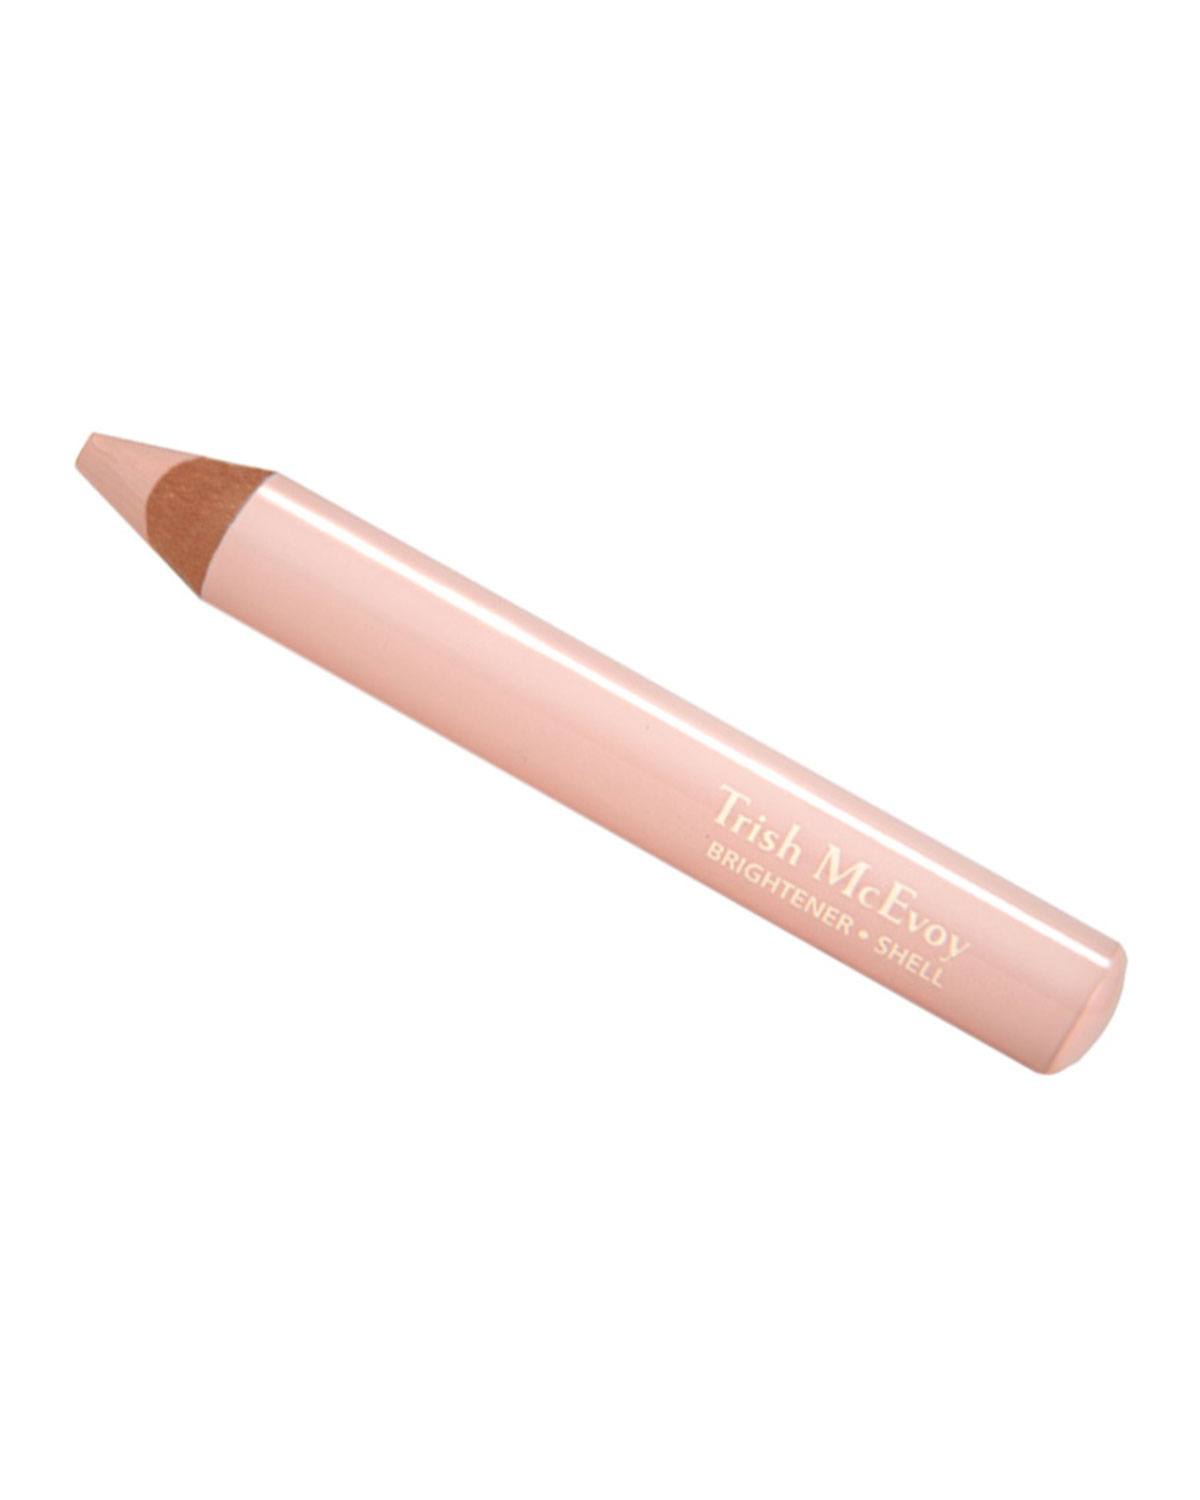 Trish McEvoy Eye Pencil Brightener Shell